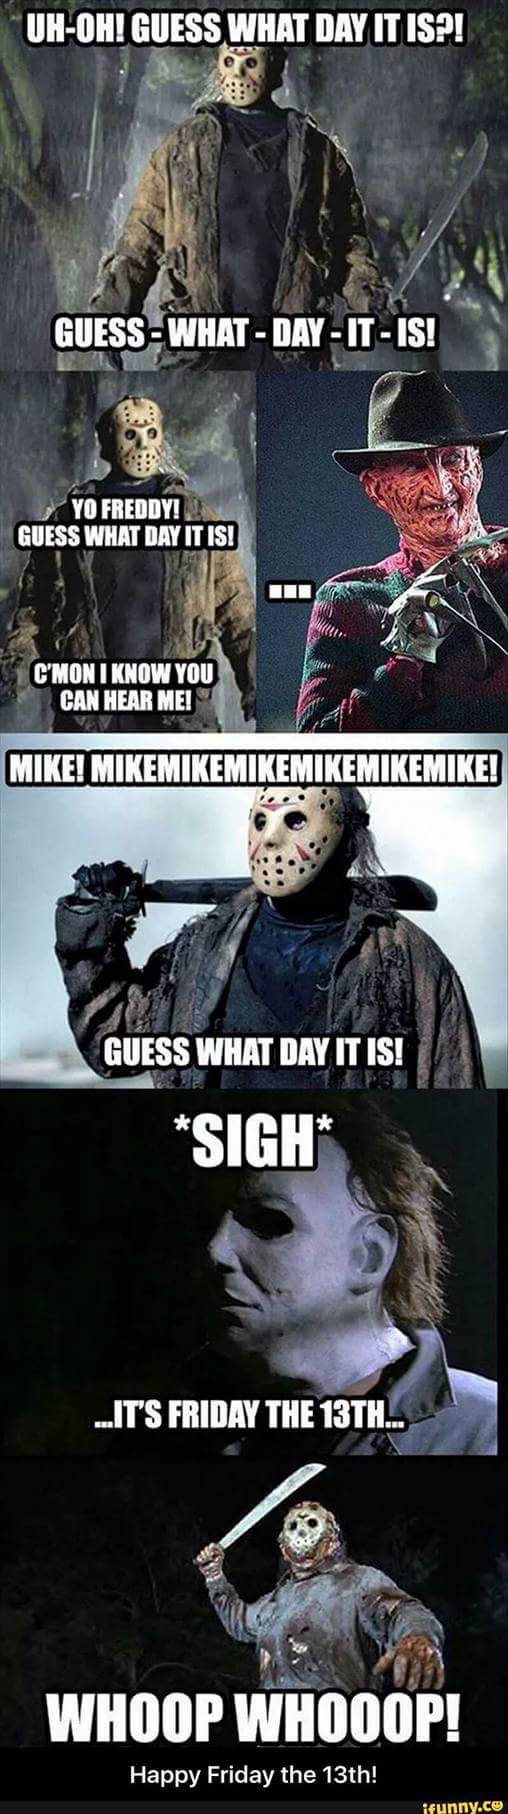 Silly Friday the 13th meme haha Jason Freddy and Michael